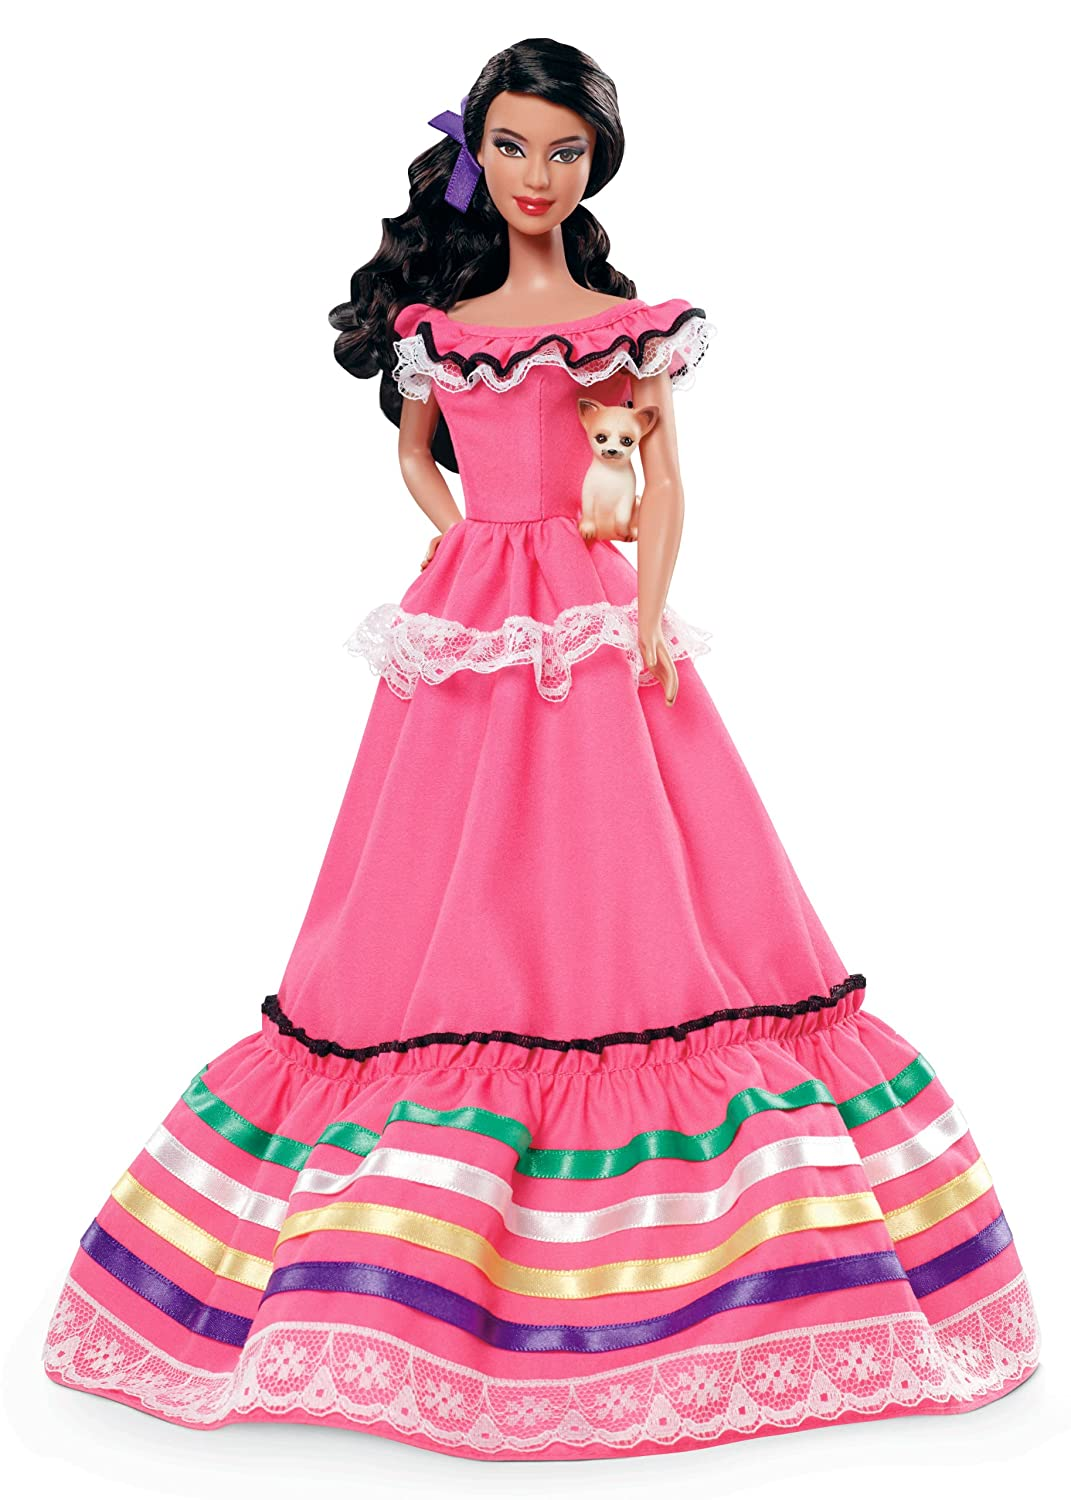 Barbie Dolls Of The World Princess Barbie Collector Dolls of The